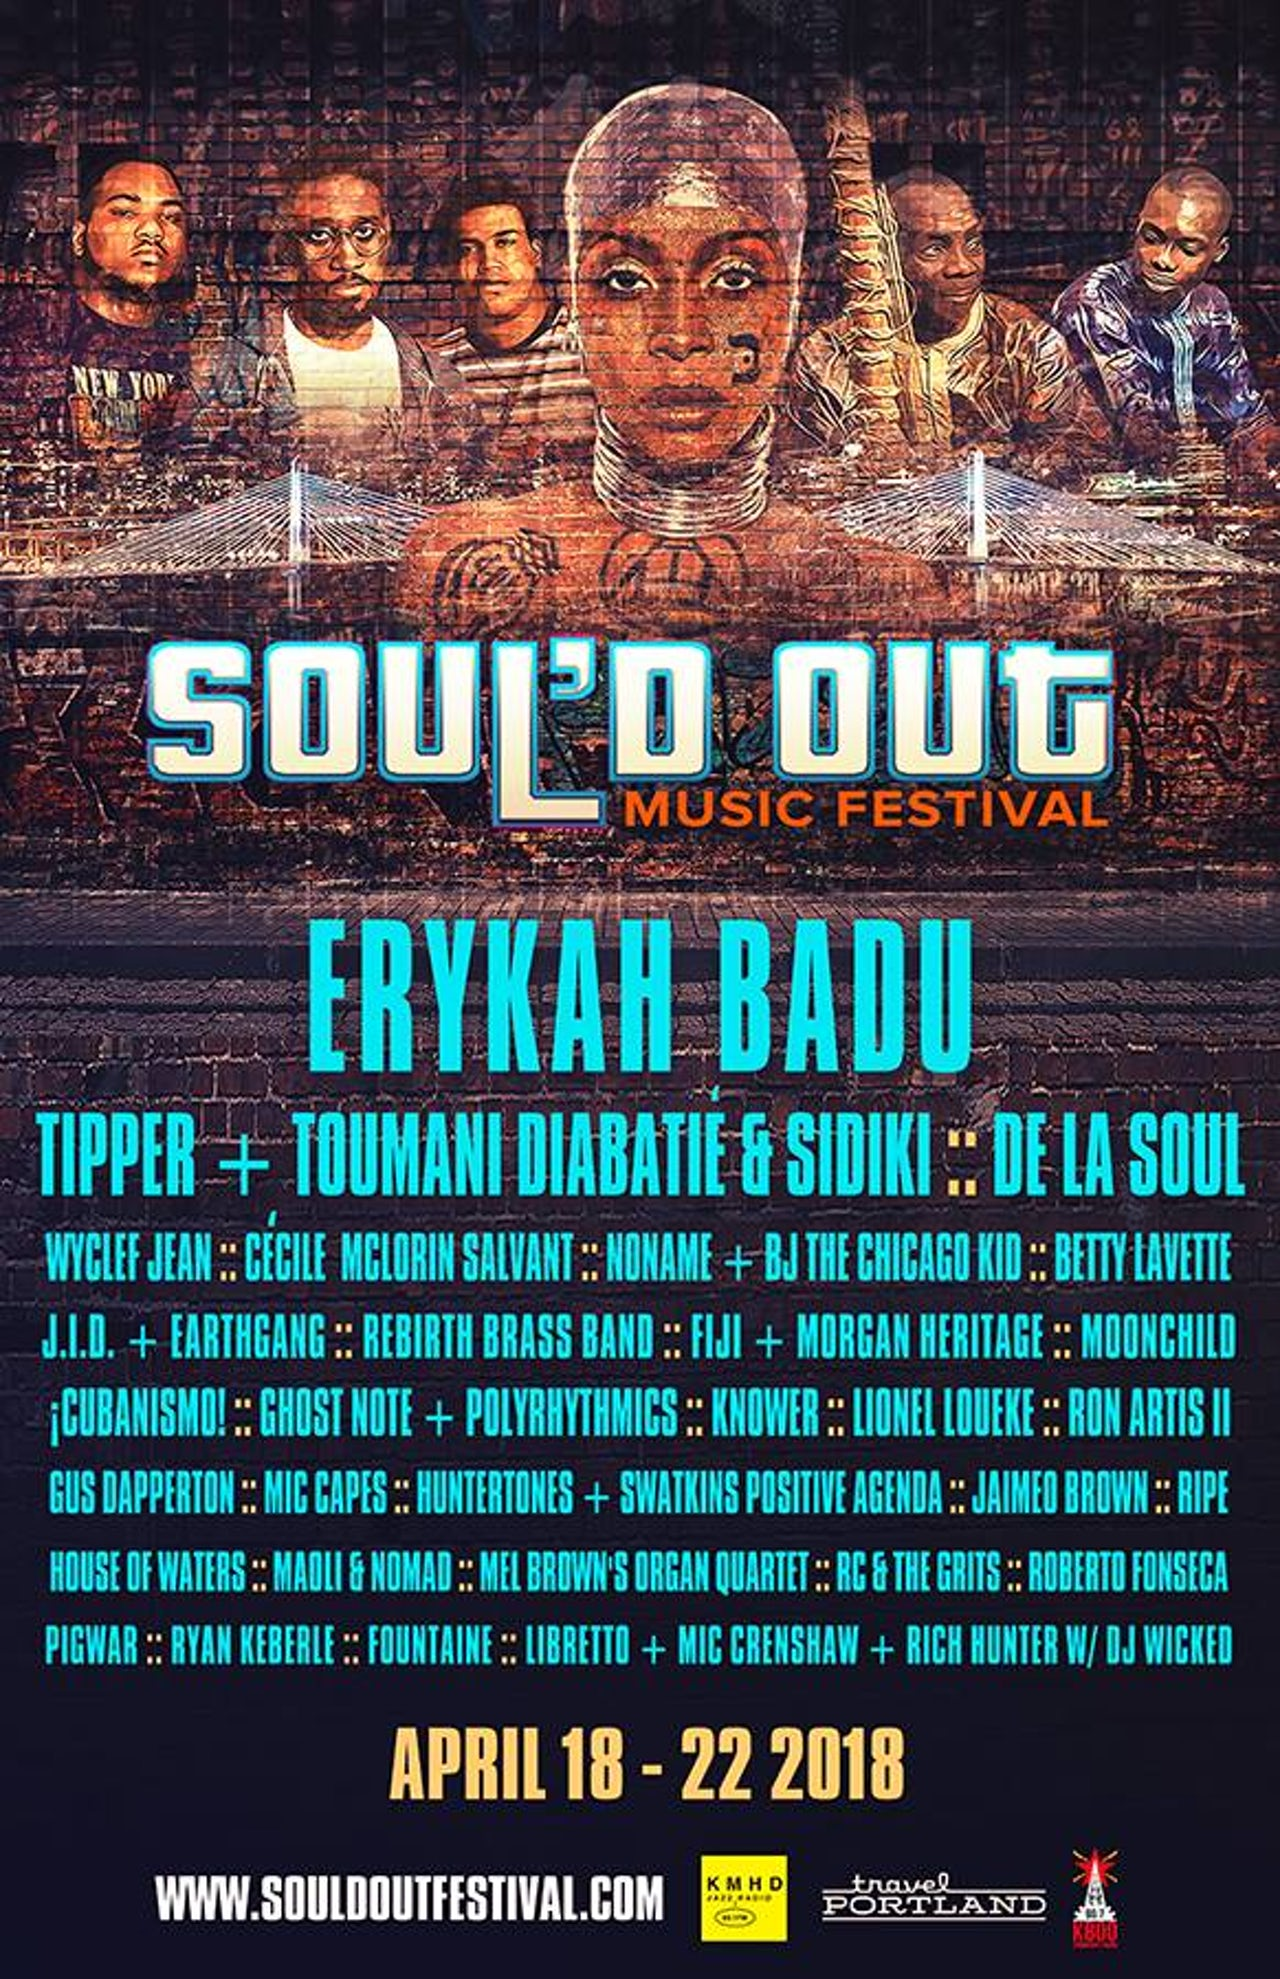 A poster for the 2018 Soul'd Out Festival, occurring over 1,000 miles away from Coachella.